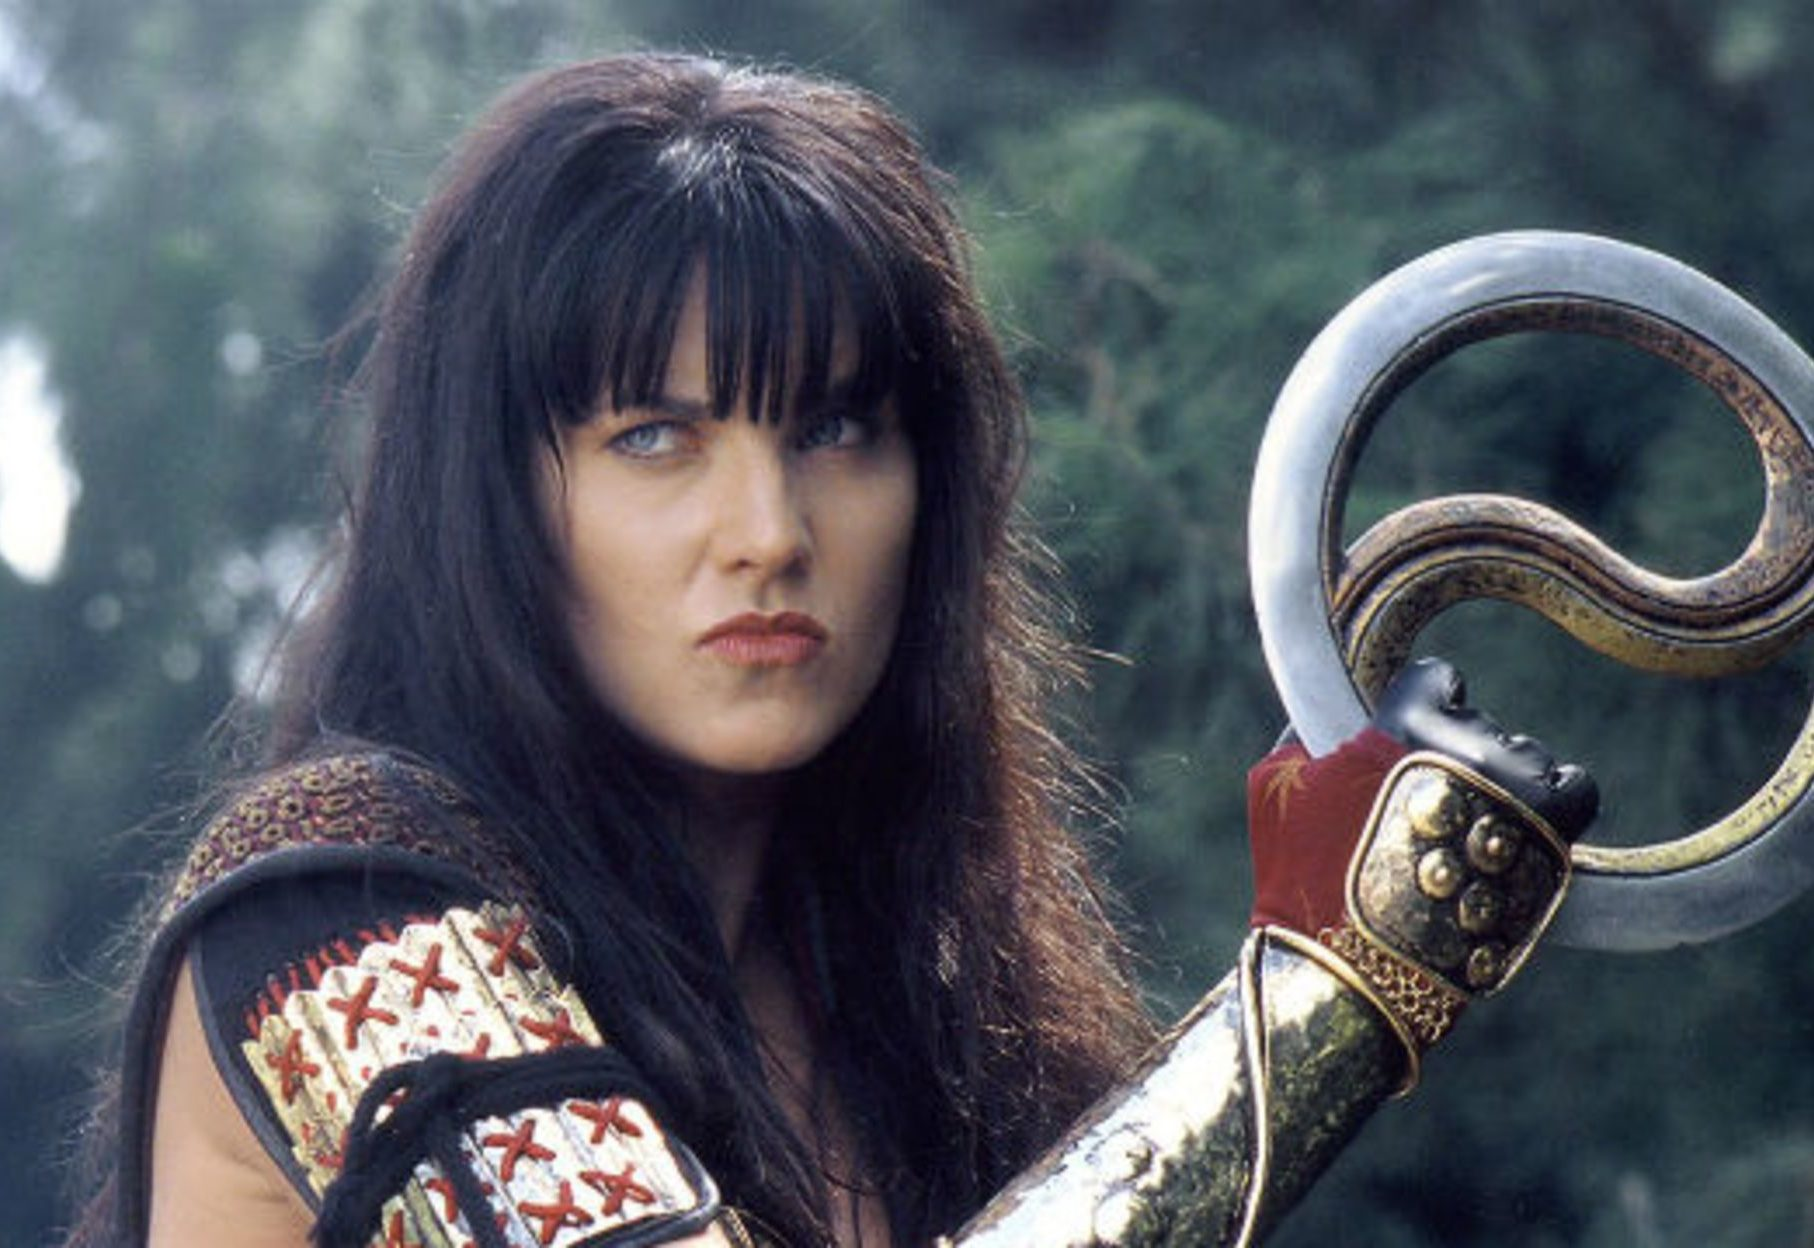 2775241 1378732 xena115 e1610011036424 20 Things You Never Knew About Xena: Warrior Princess